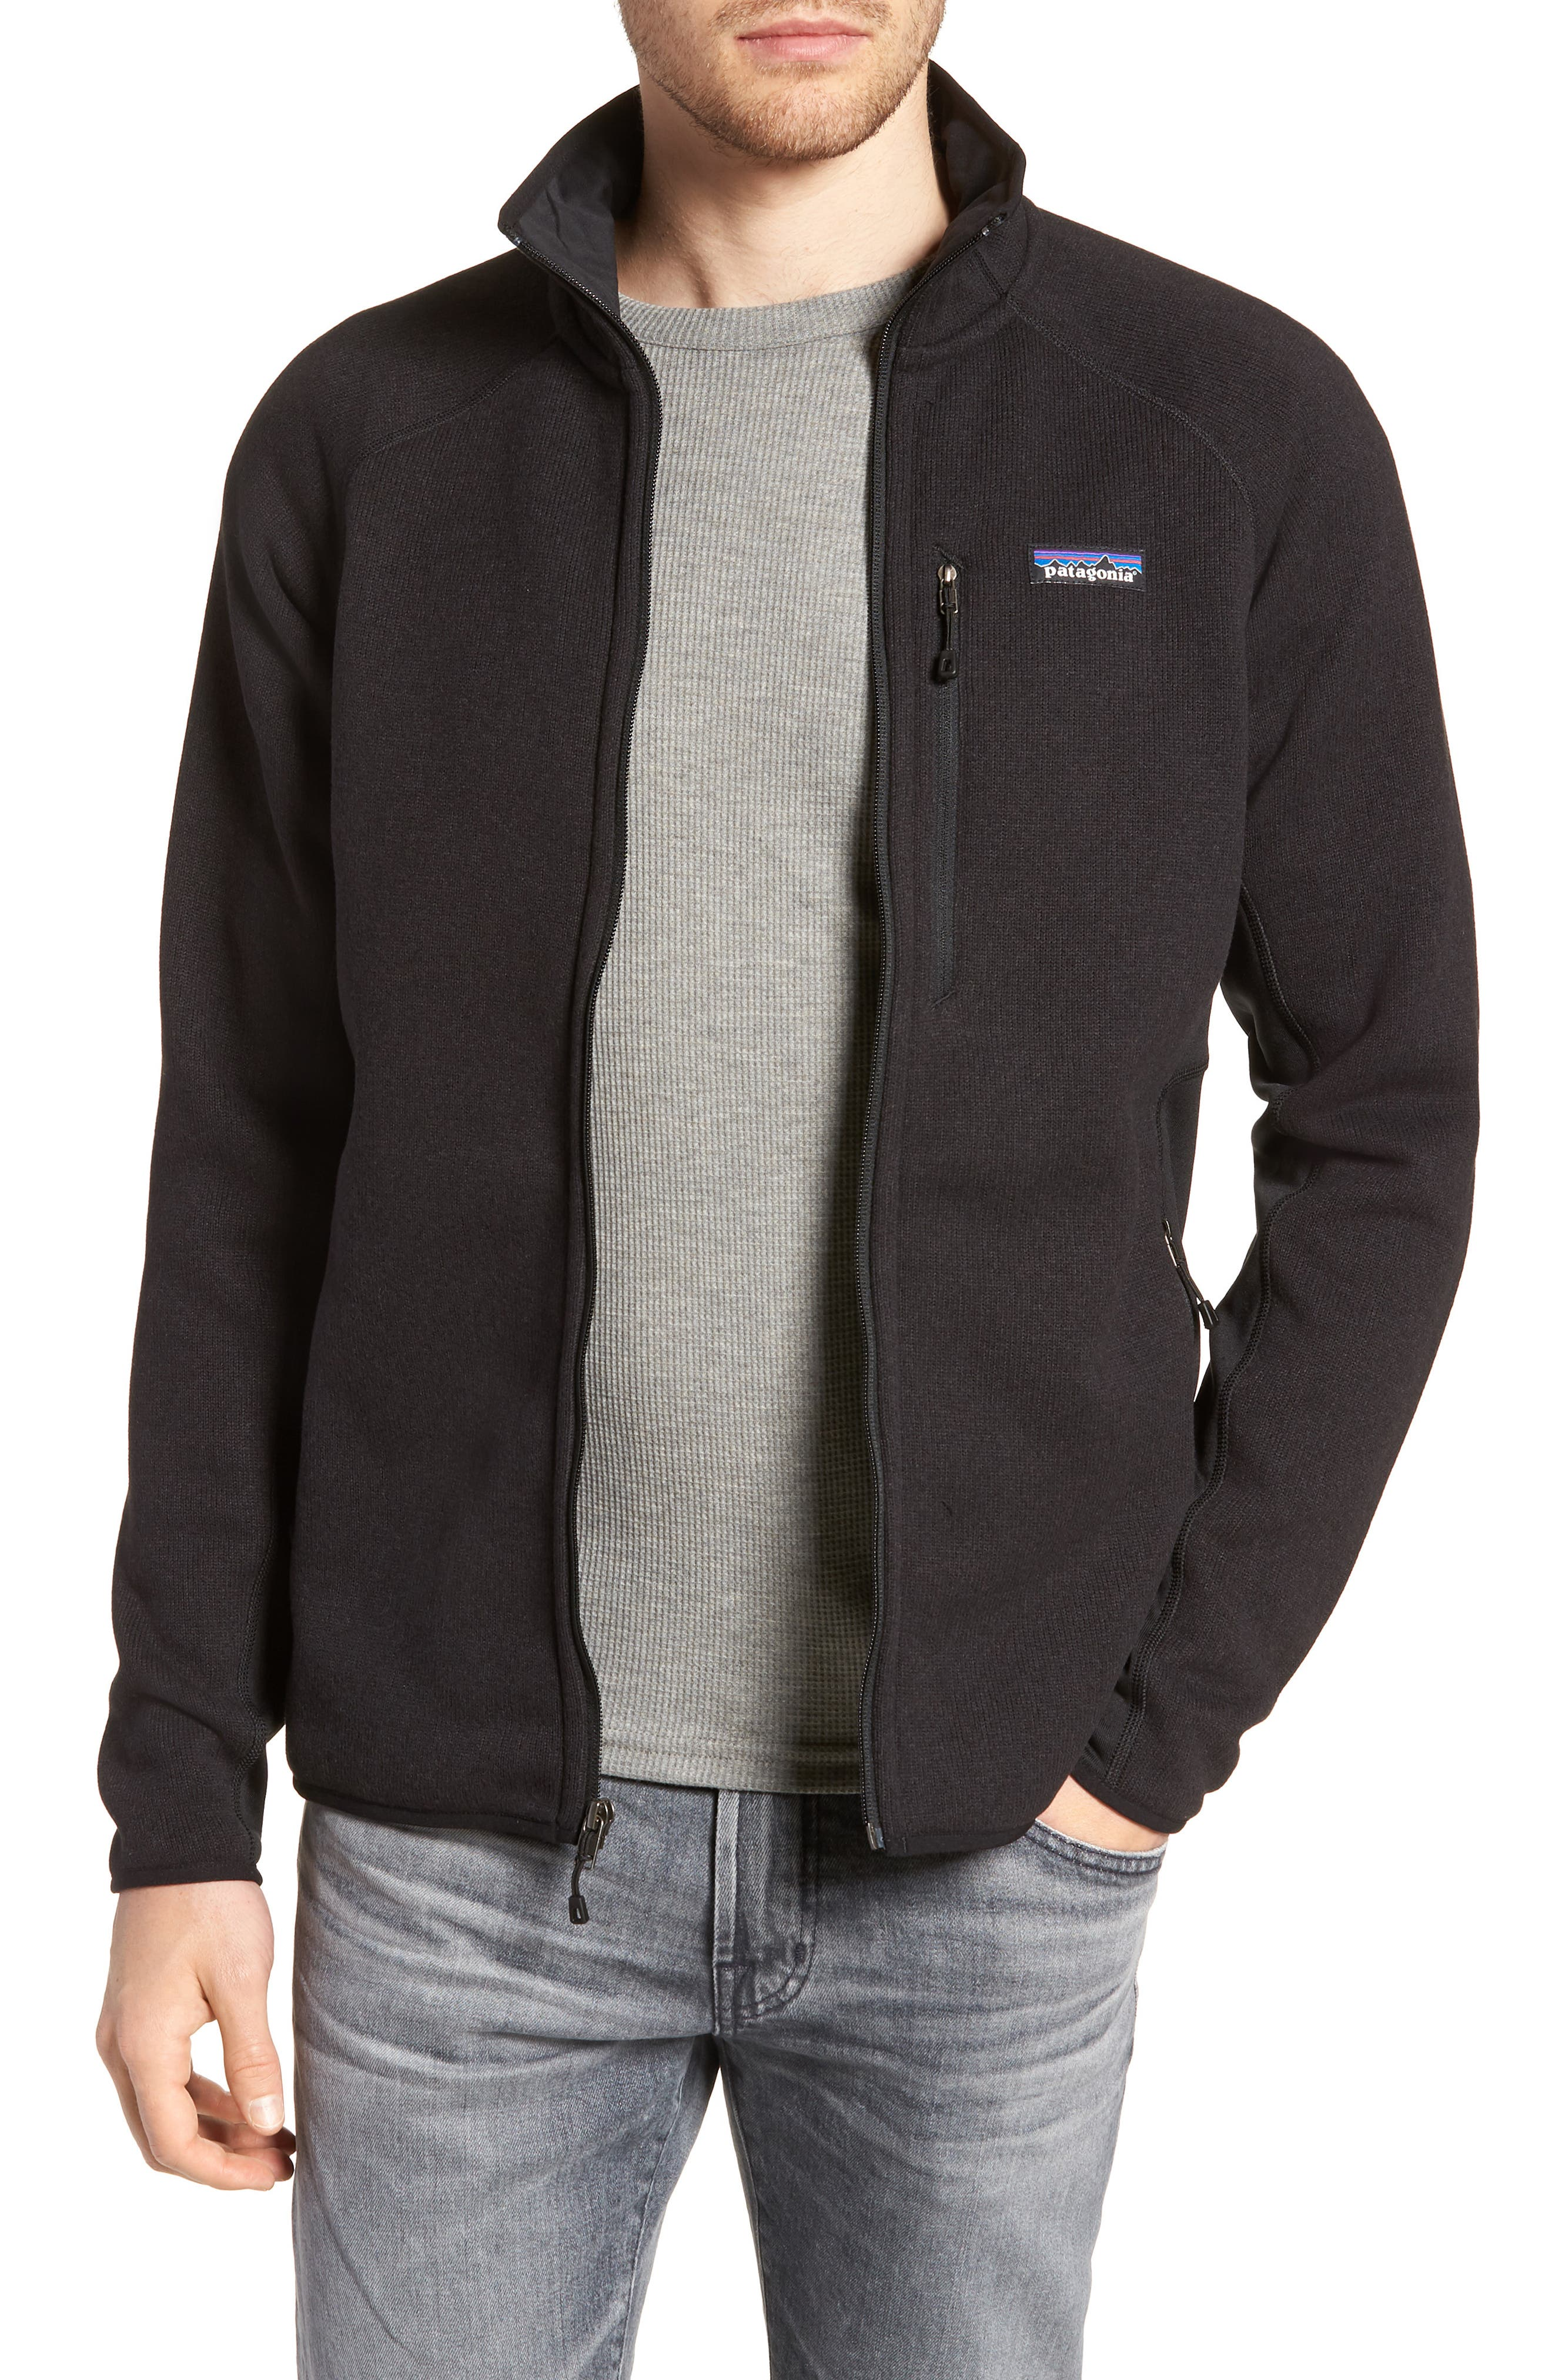 Better Sweater<sup>®</sup> Performance Slim Fit Zip Jacket,                             Main thumbnail 1, color,                             BLK